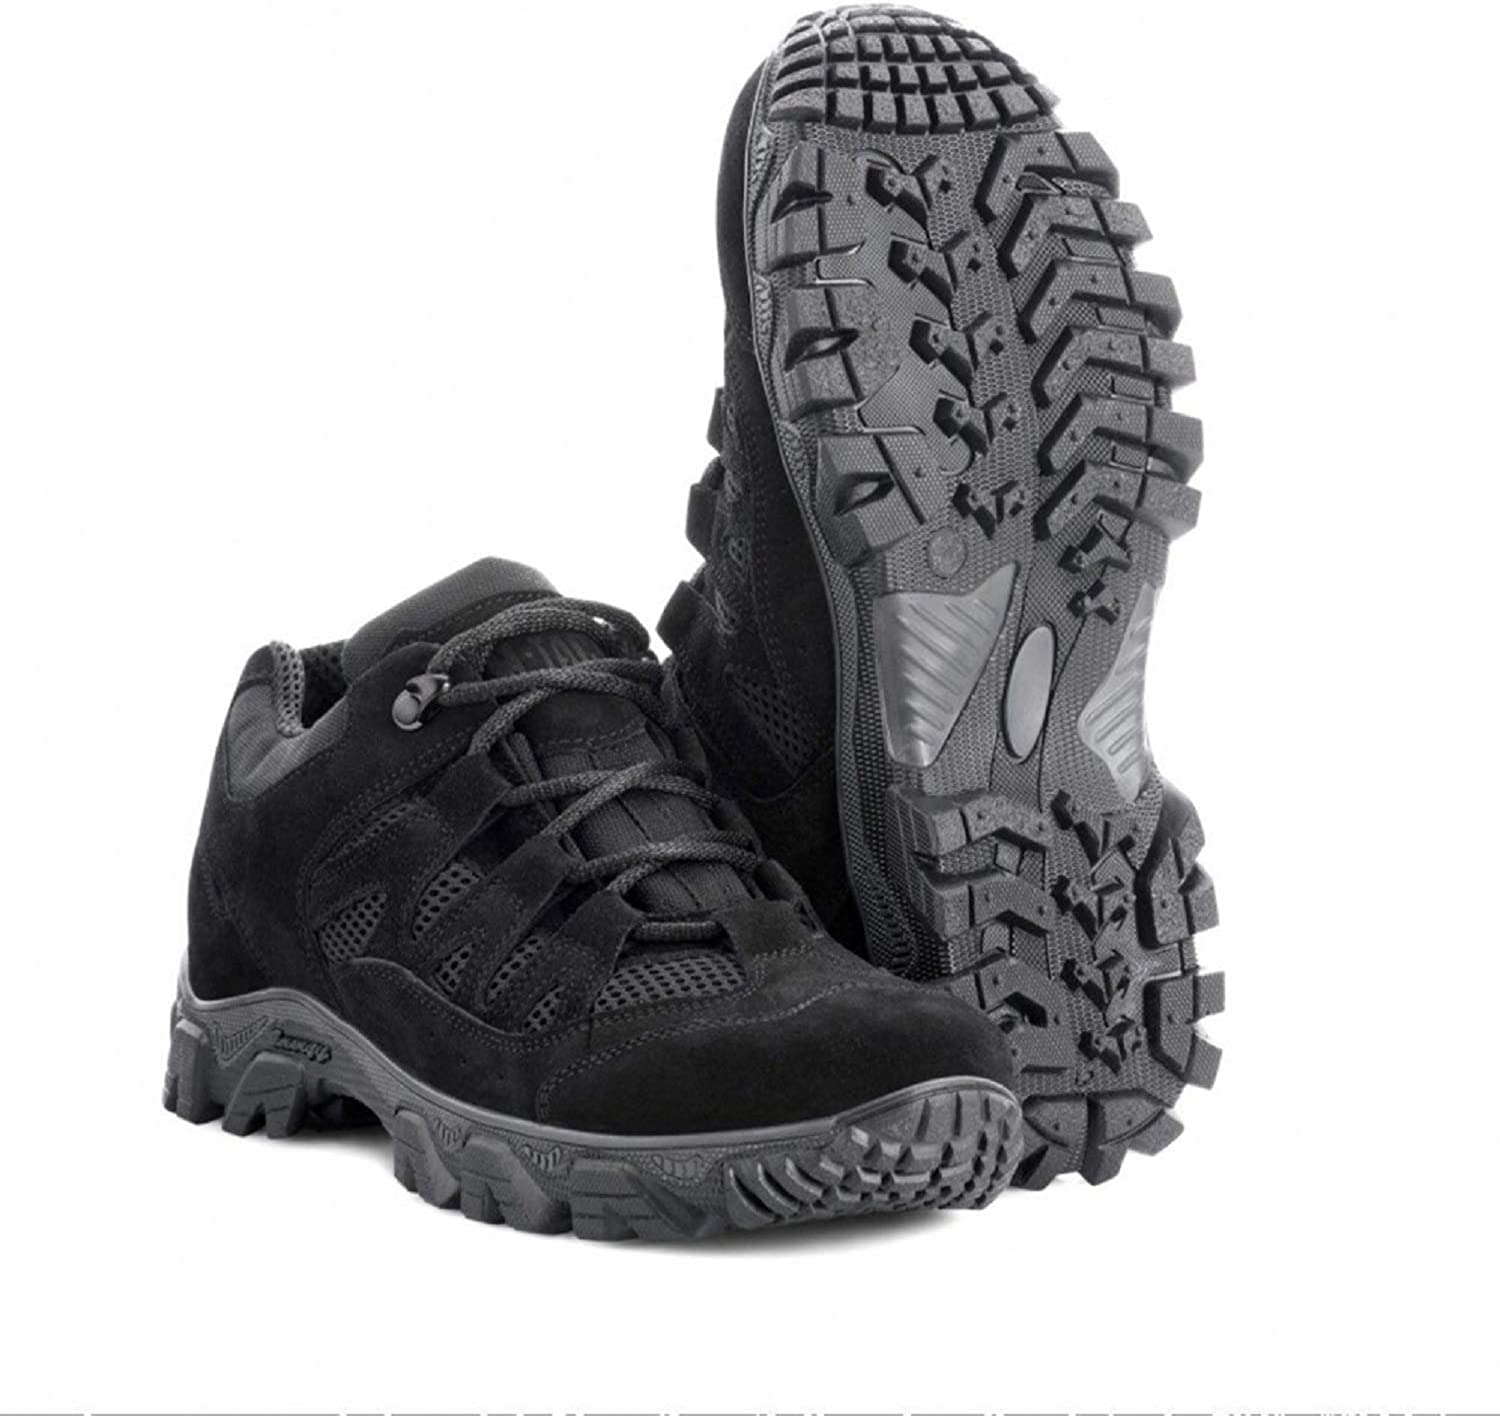 M-Tac Tactical Sneakers Hiking Shoes Military Footwear